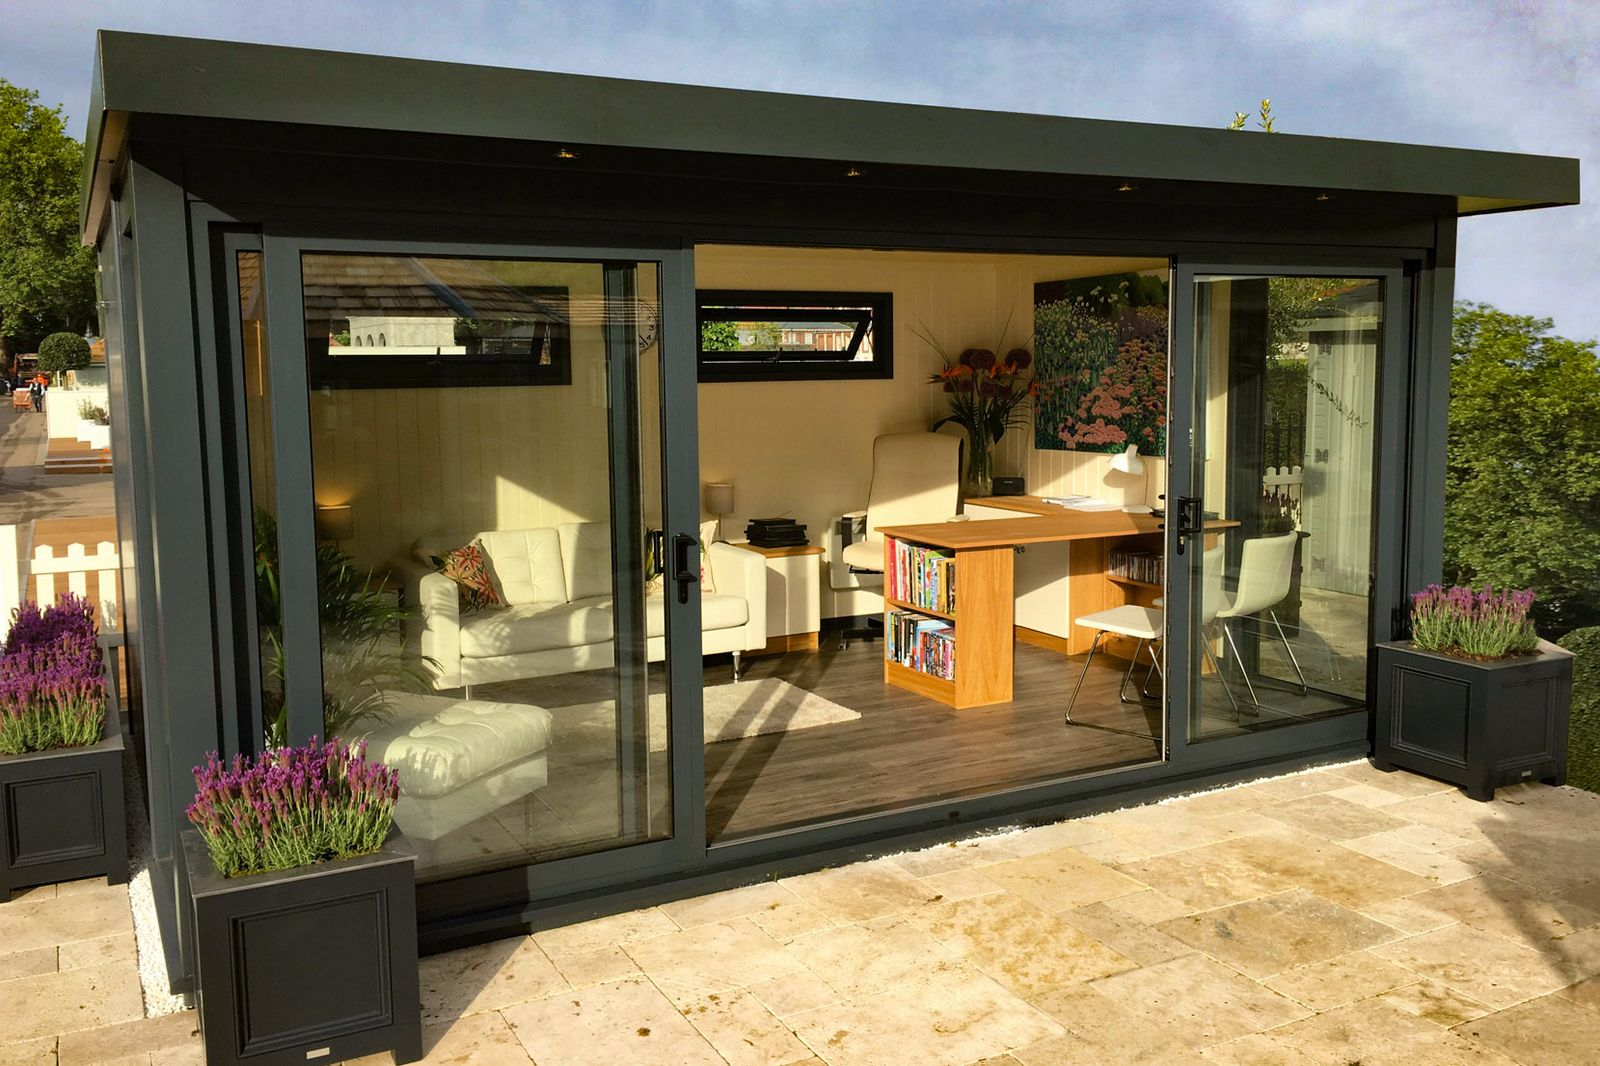 Malvern Charford Garden Office - An ideal building to work from home!